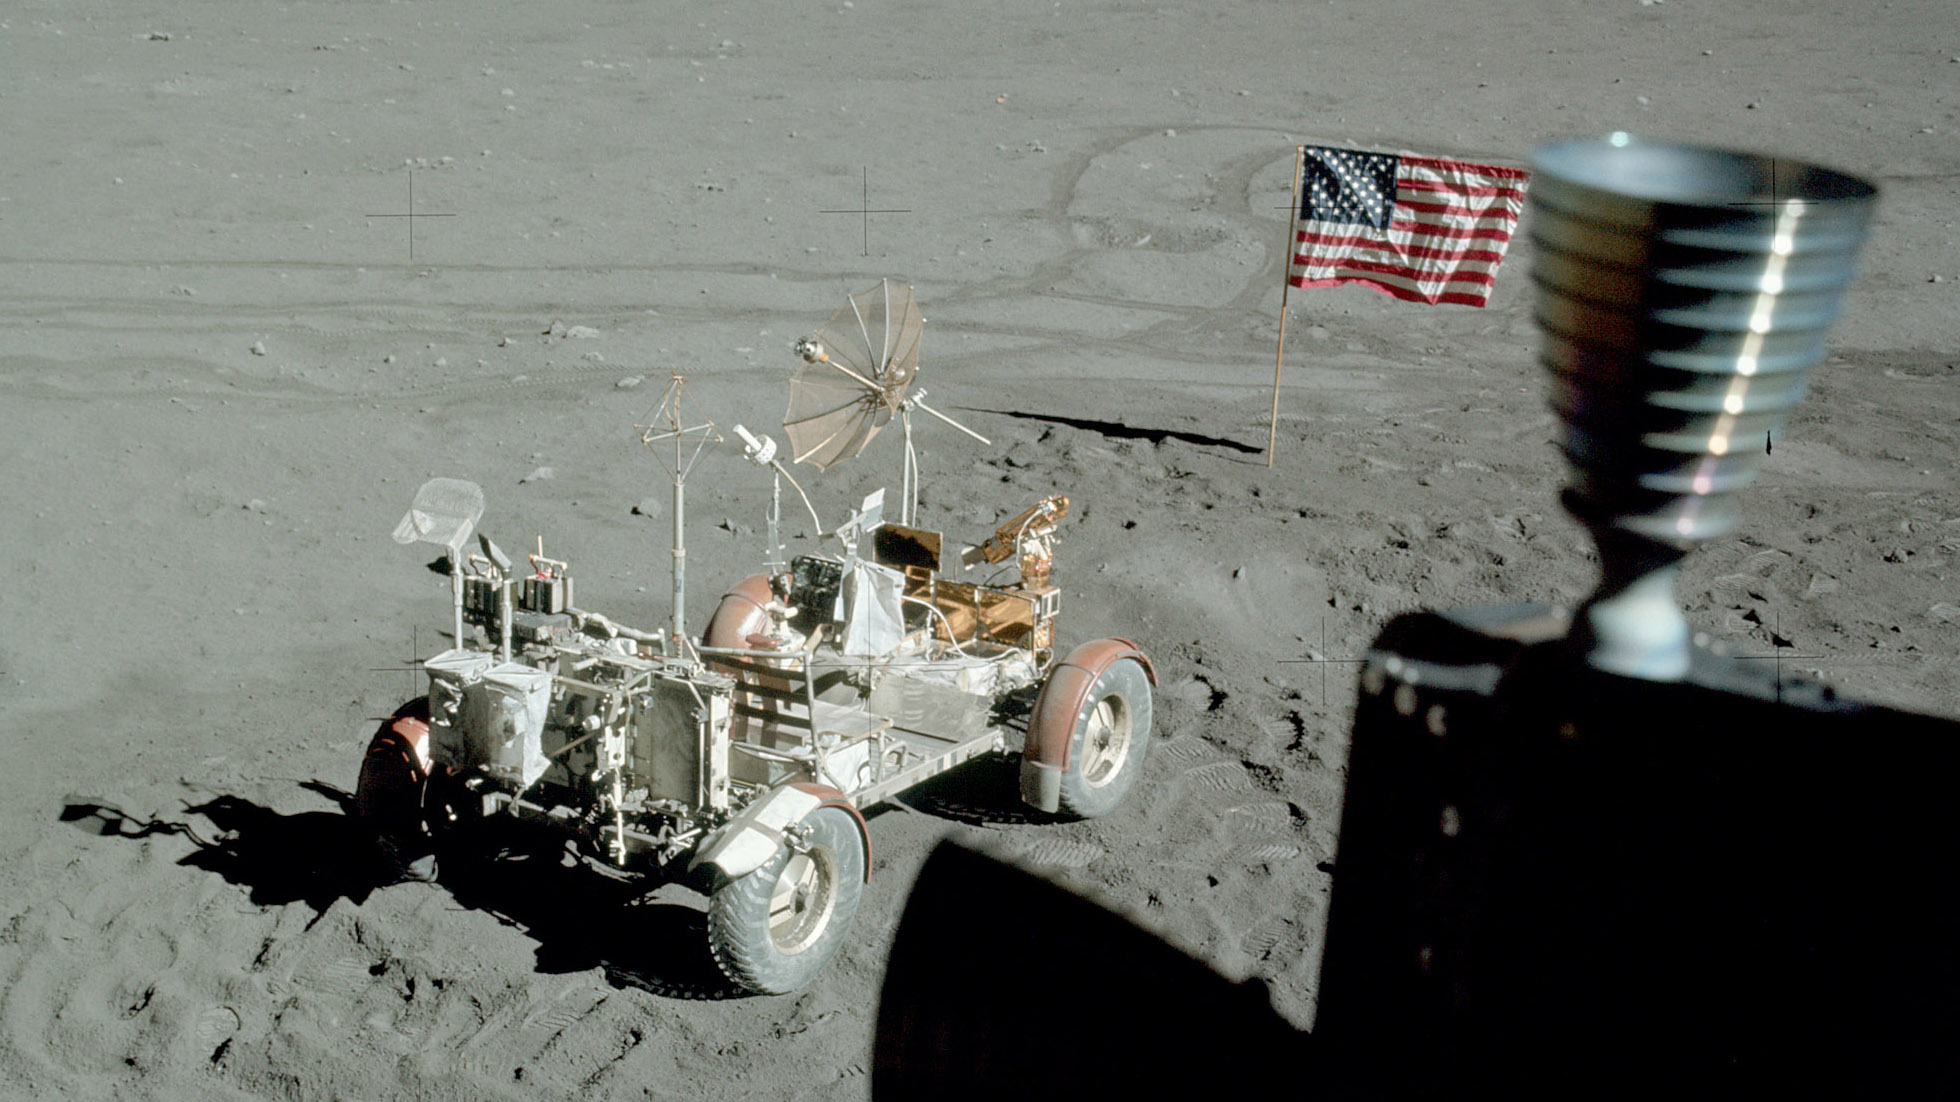 Humans Last Landed On The Moon 42 Years Ago Today ...